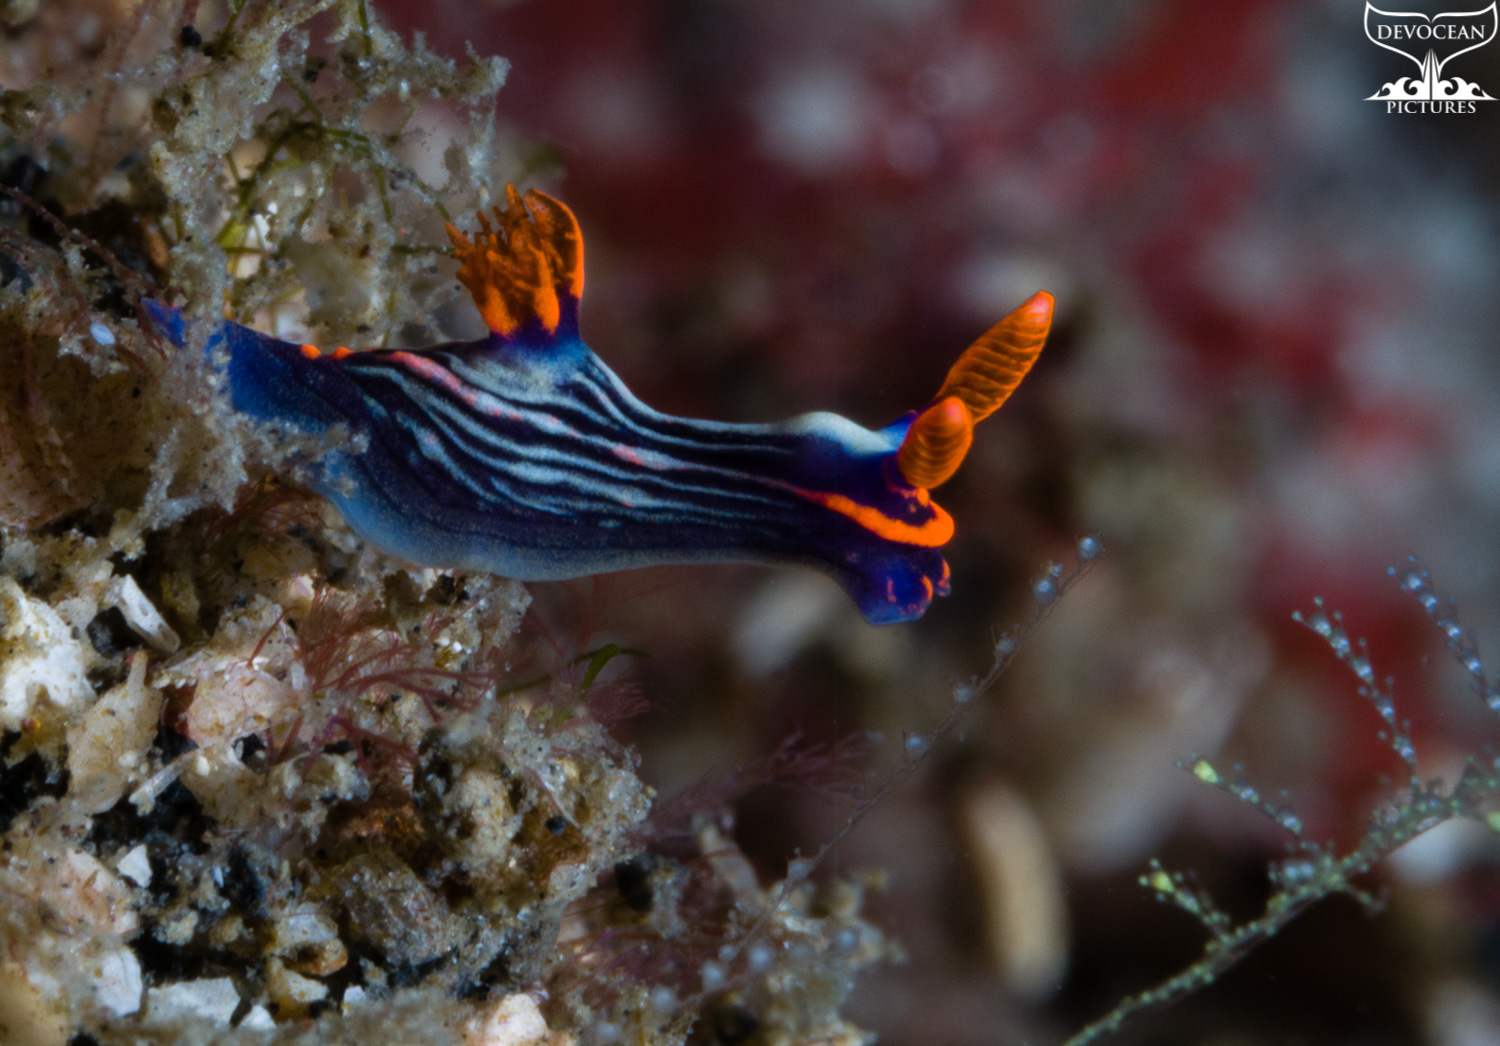 Underwater macro shot of Nembrotha kubaryana in Lembeh (Indonesia). This nudibranch (blue-green body with black stripes, bright red rhinophores and gills) lifts off the ground to determine the way to go.